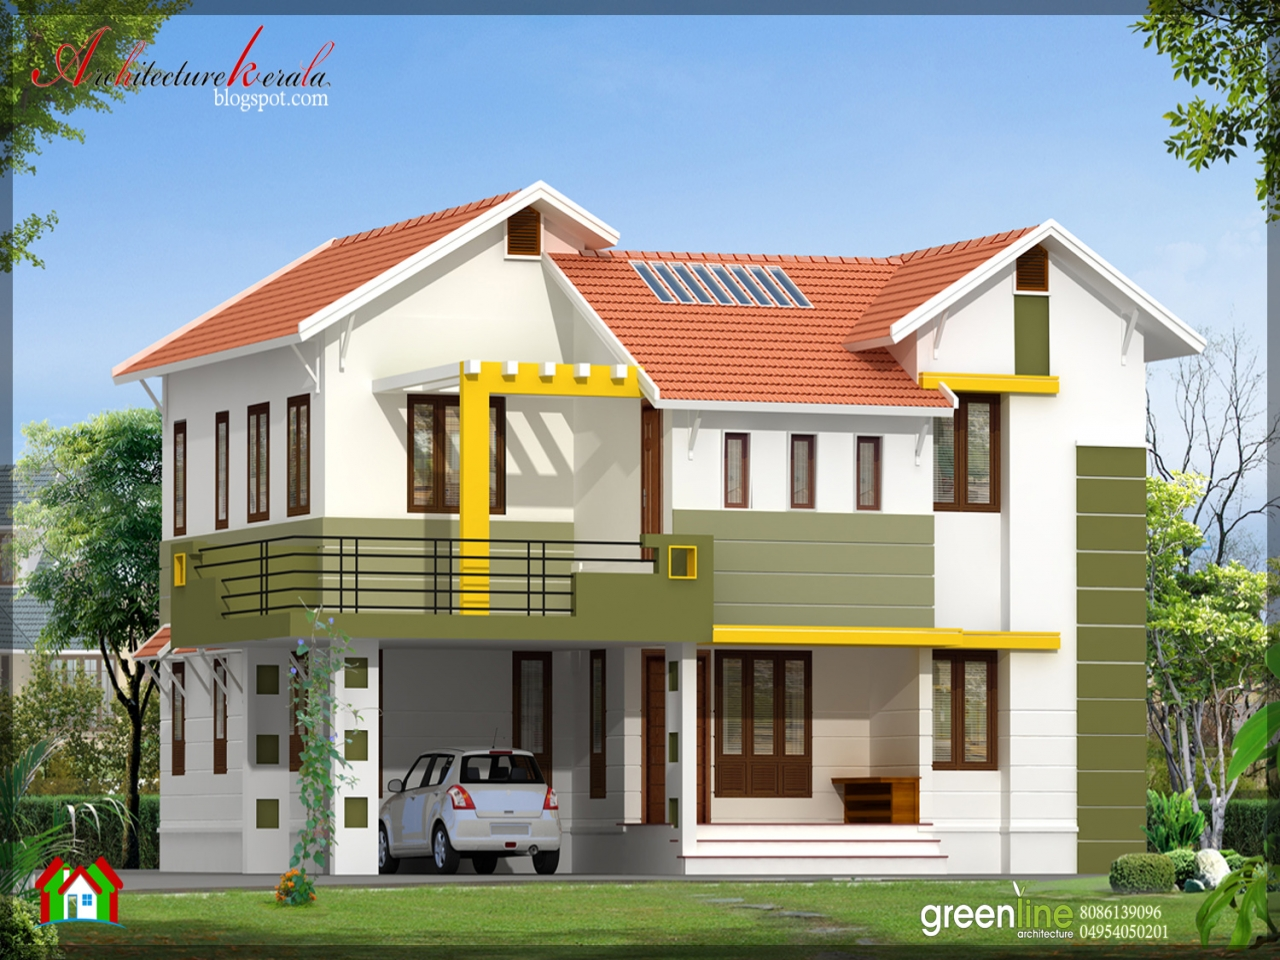 Simple modern house designs simple house design in india home designs indian style Easy home design ideas